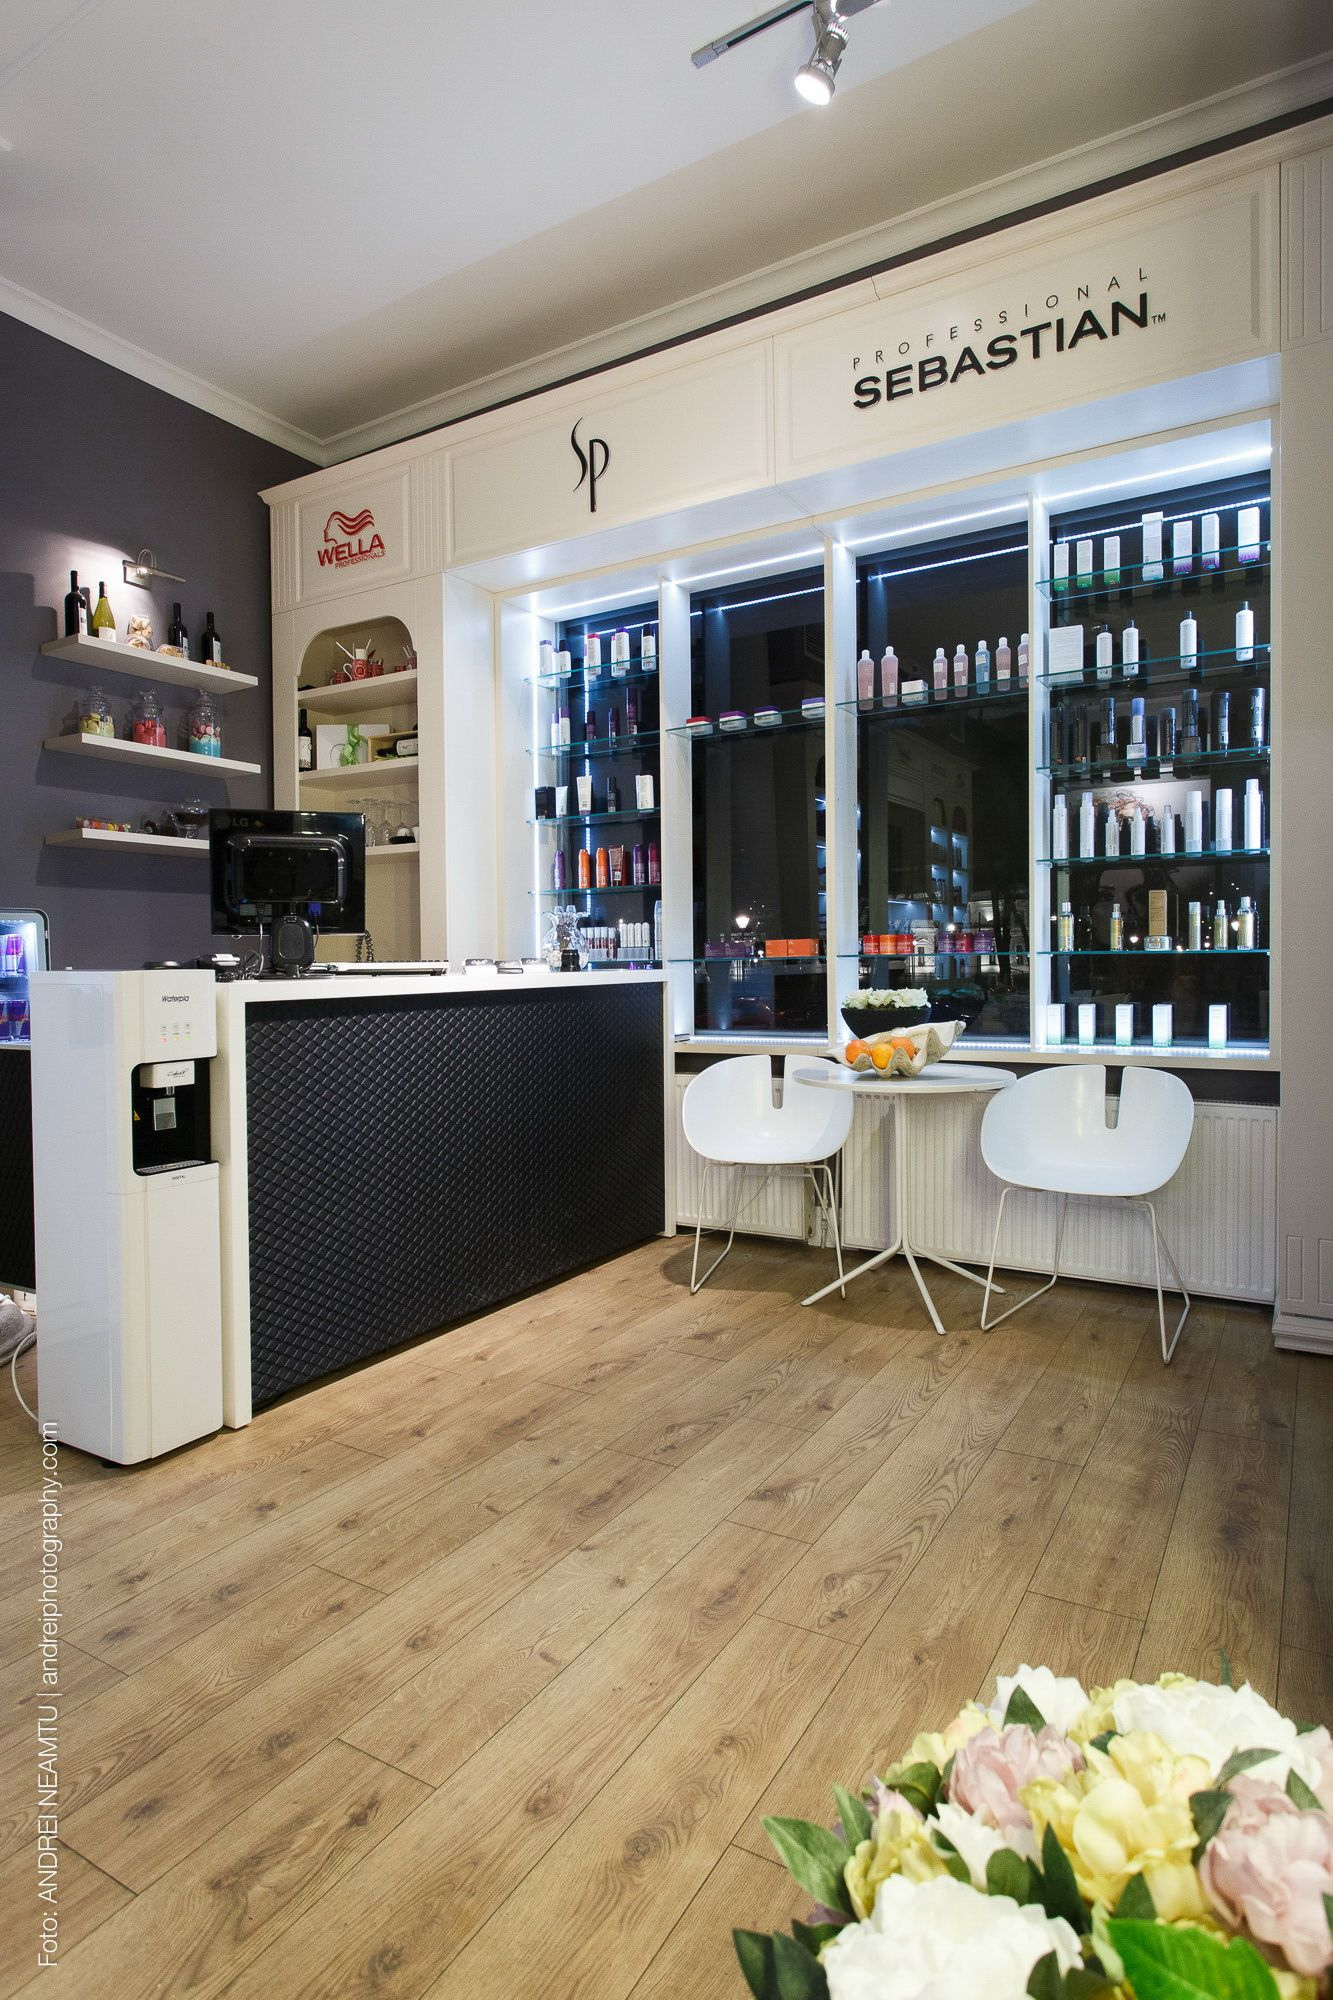 A Combination Of Modern And Classic Beauty Salon Interior Design